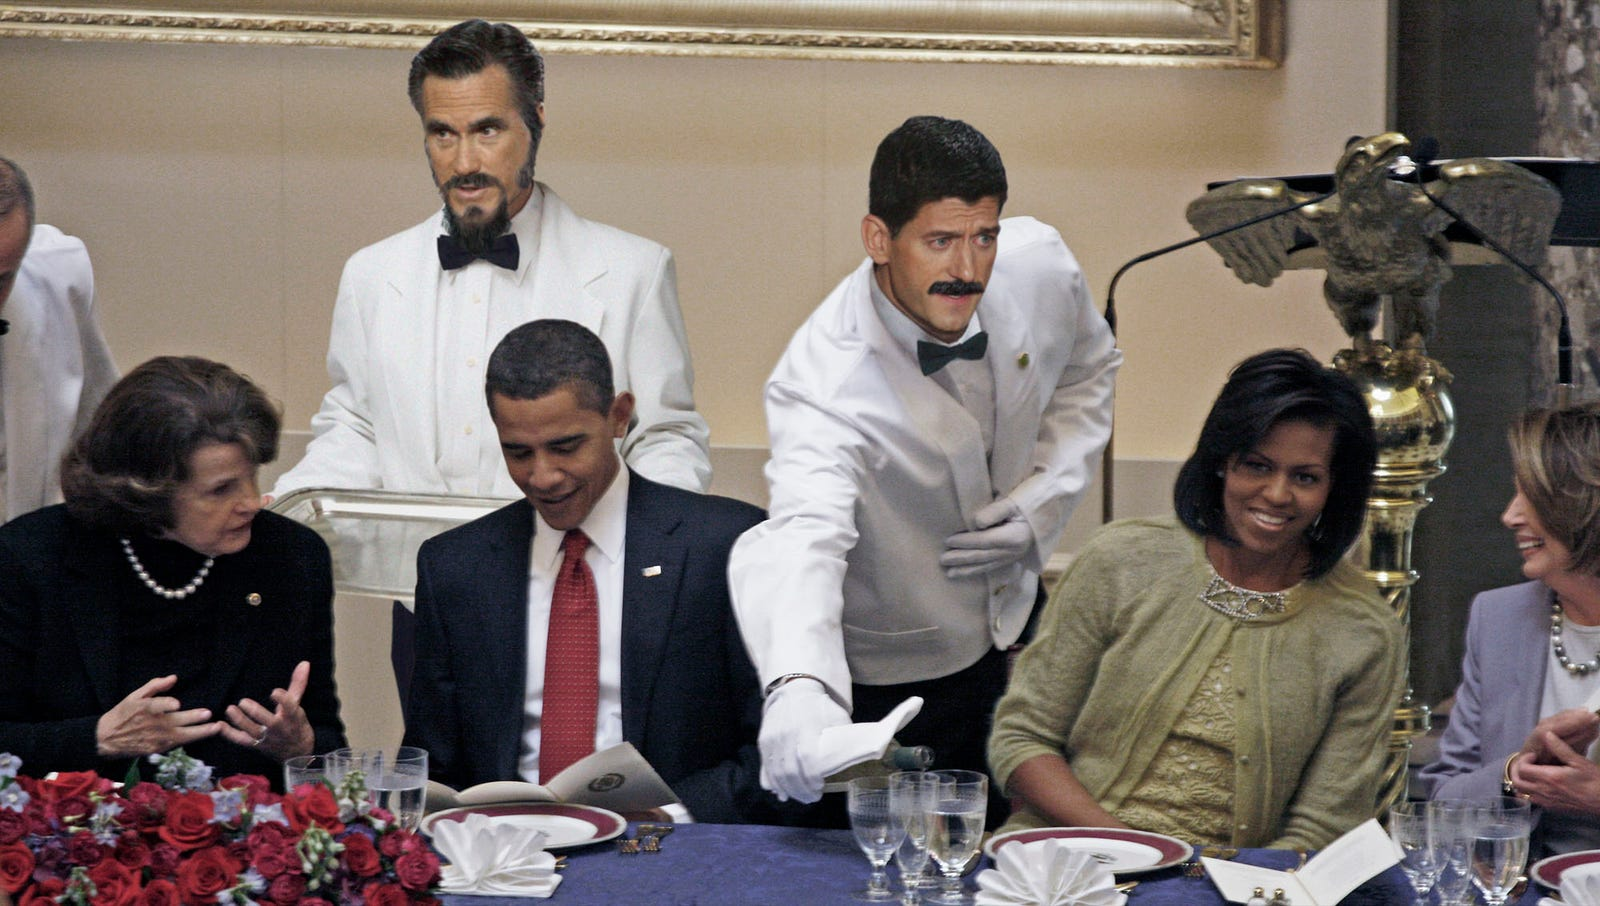 Romney, Ryan Sneak Into DNC While Posing As Caterers